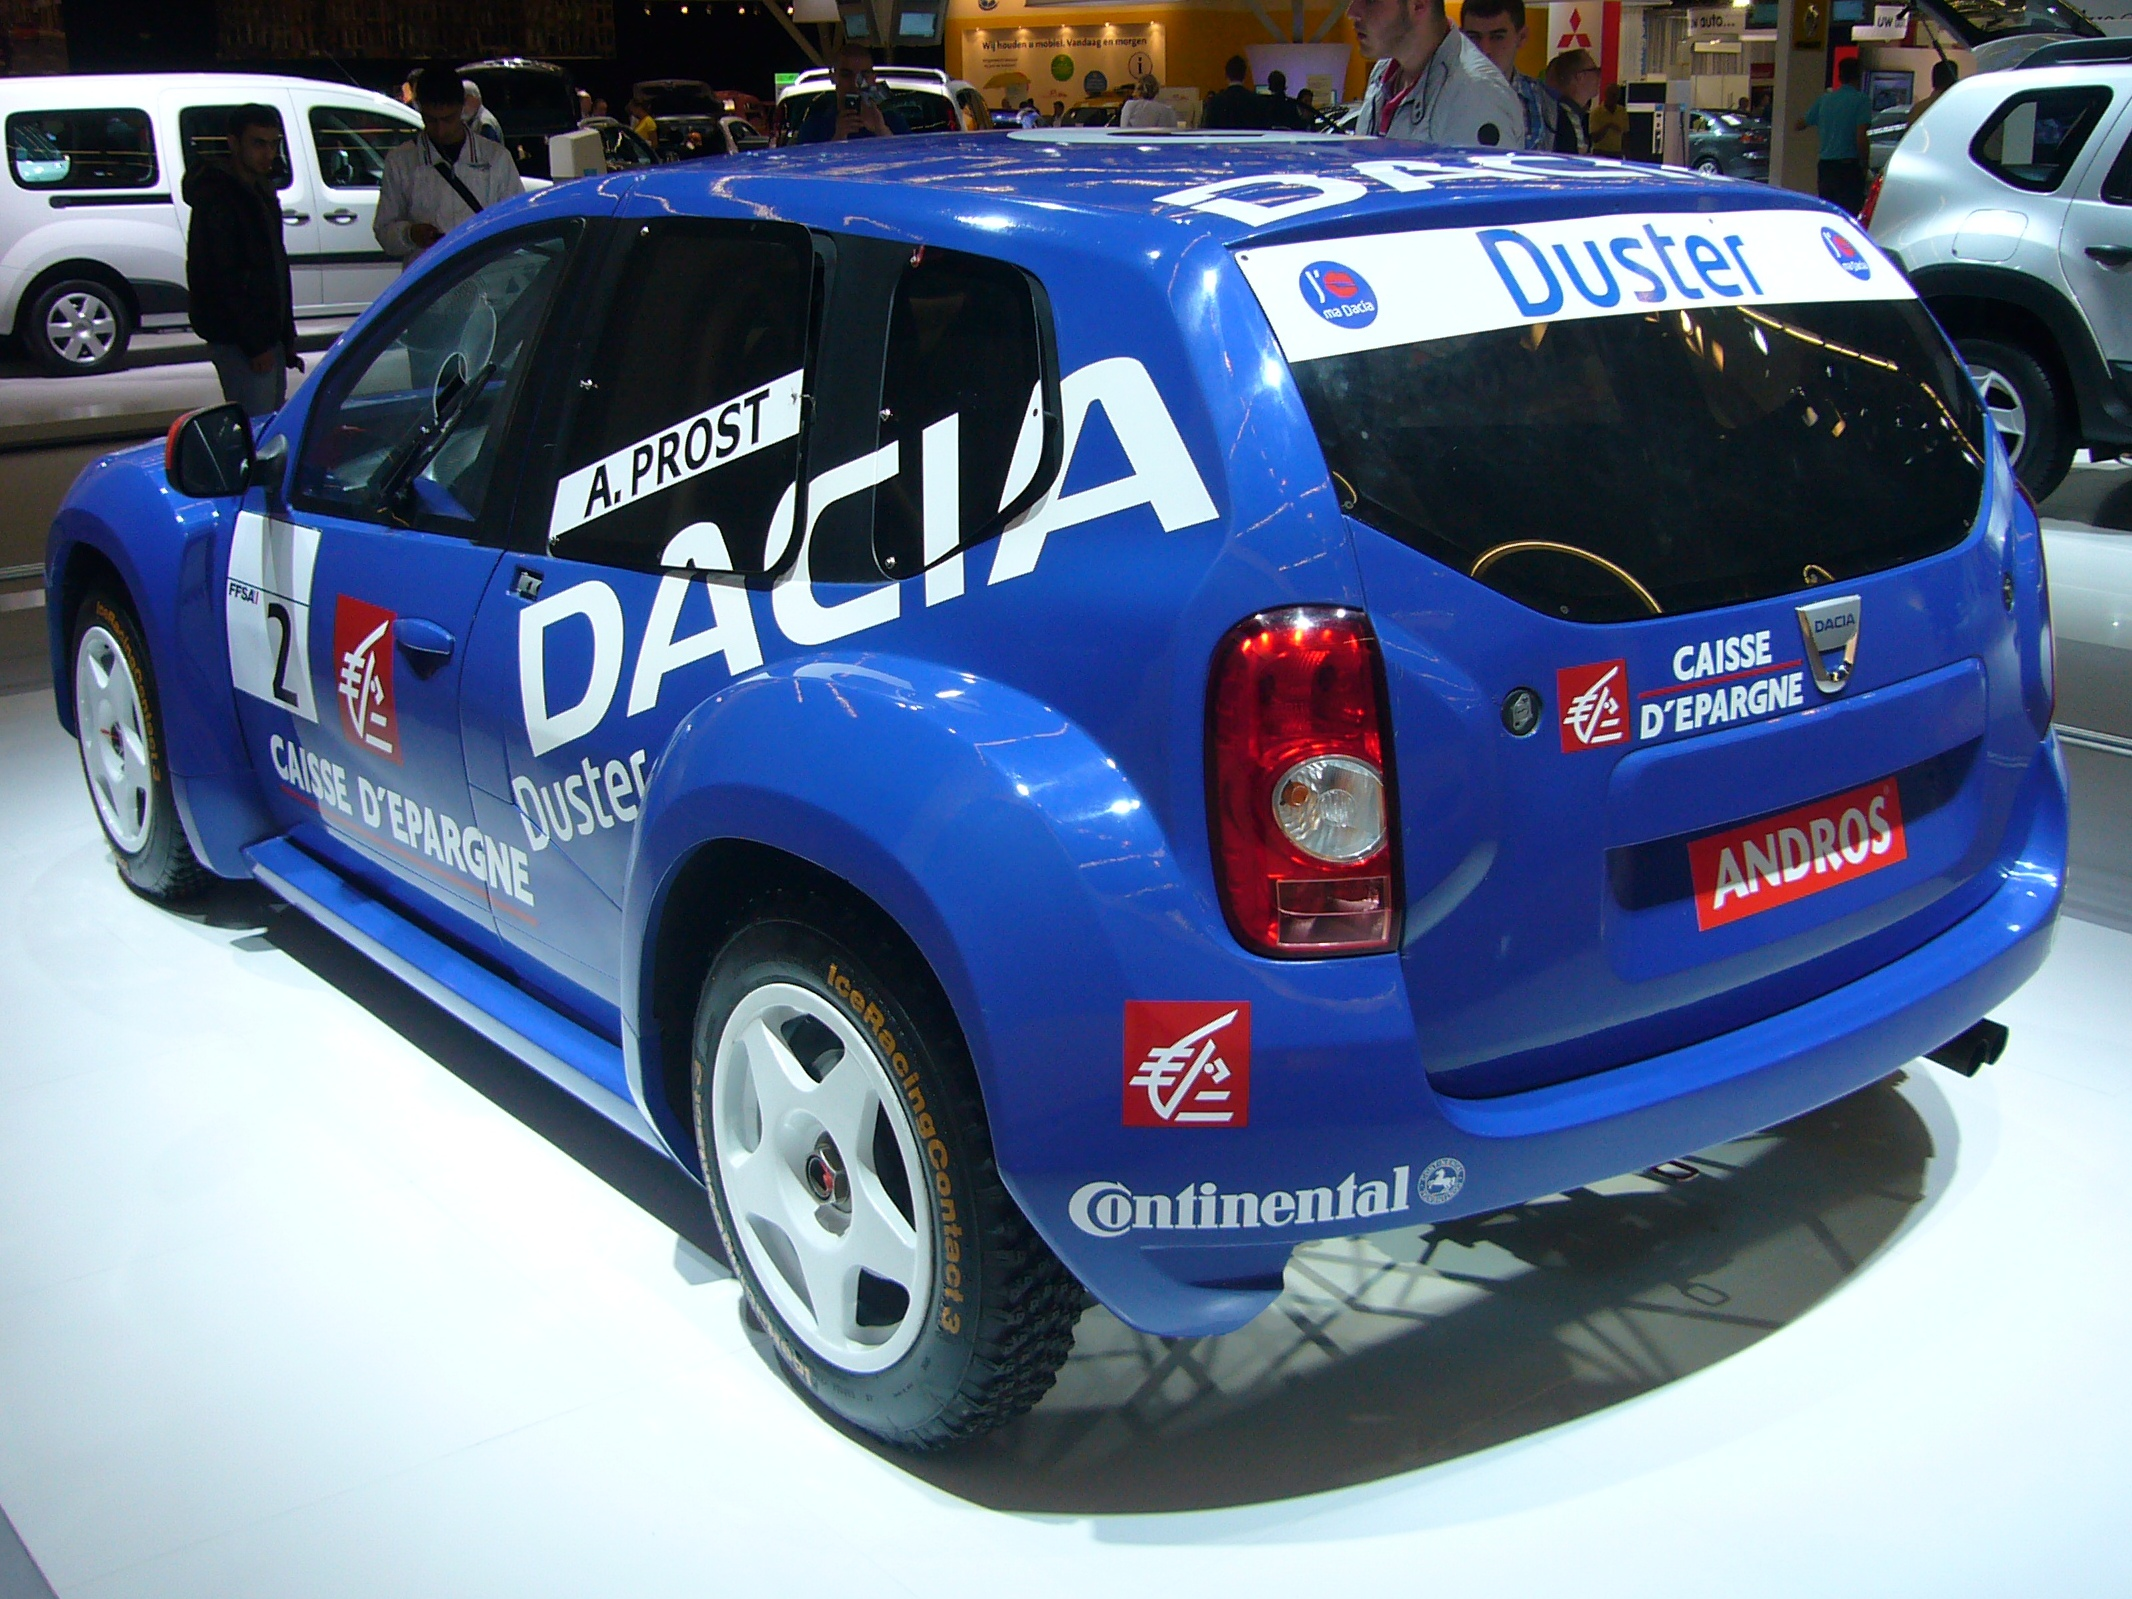 file dacia duster andros trophy rear quarter jpg wikimedia commons. Black Bedroom Furniture Sets. Home Design Ideas